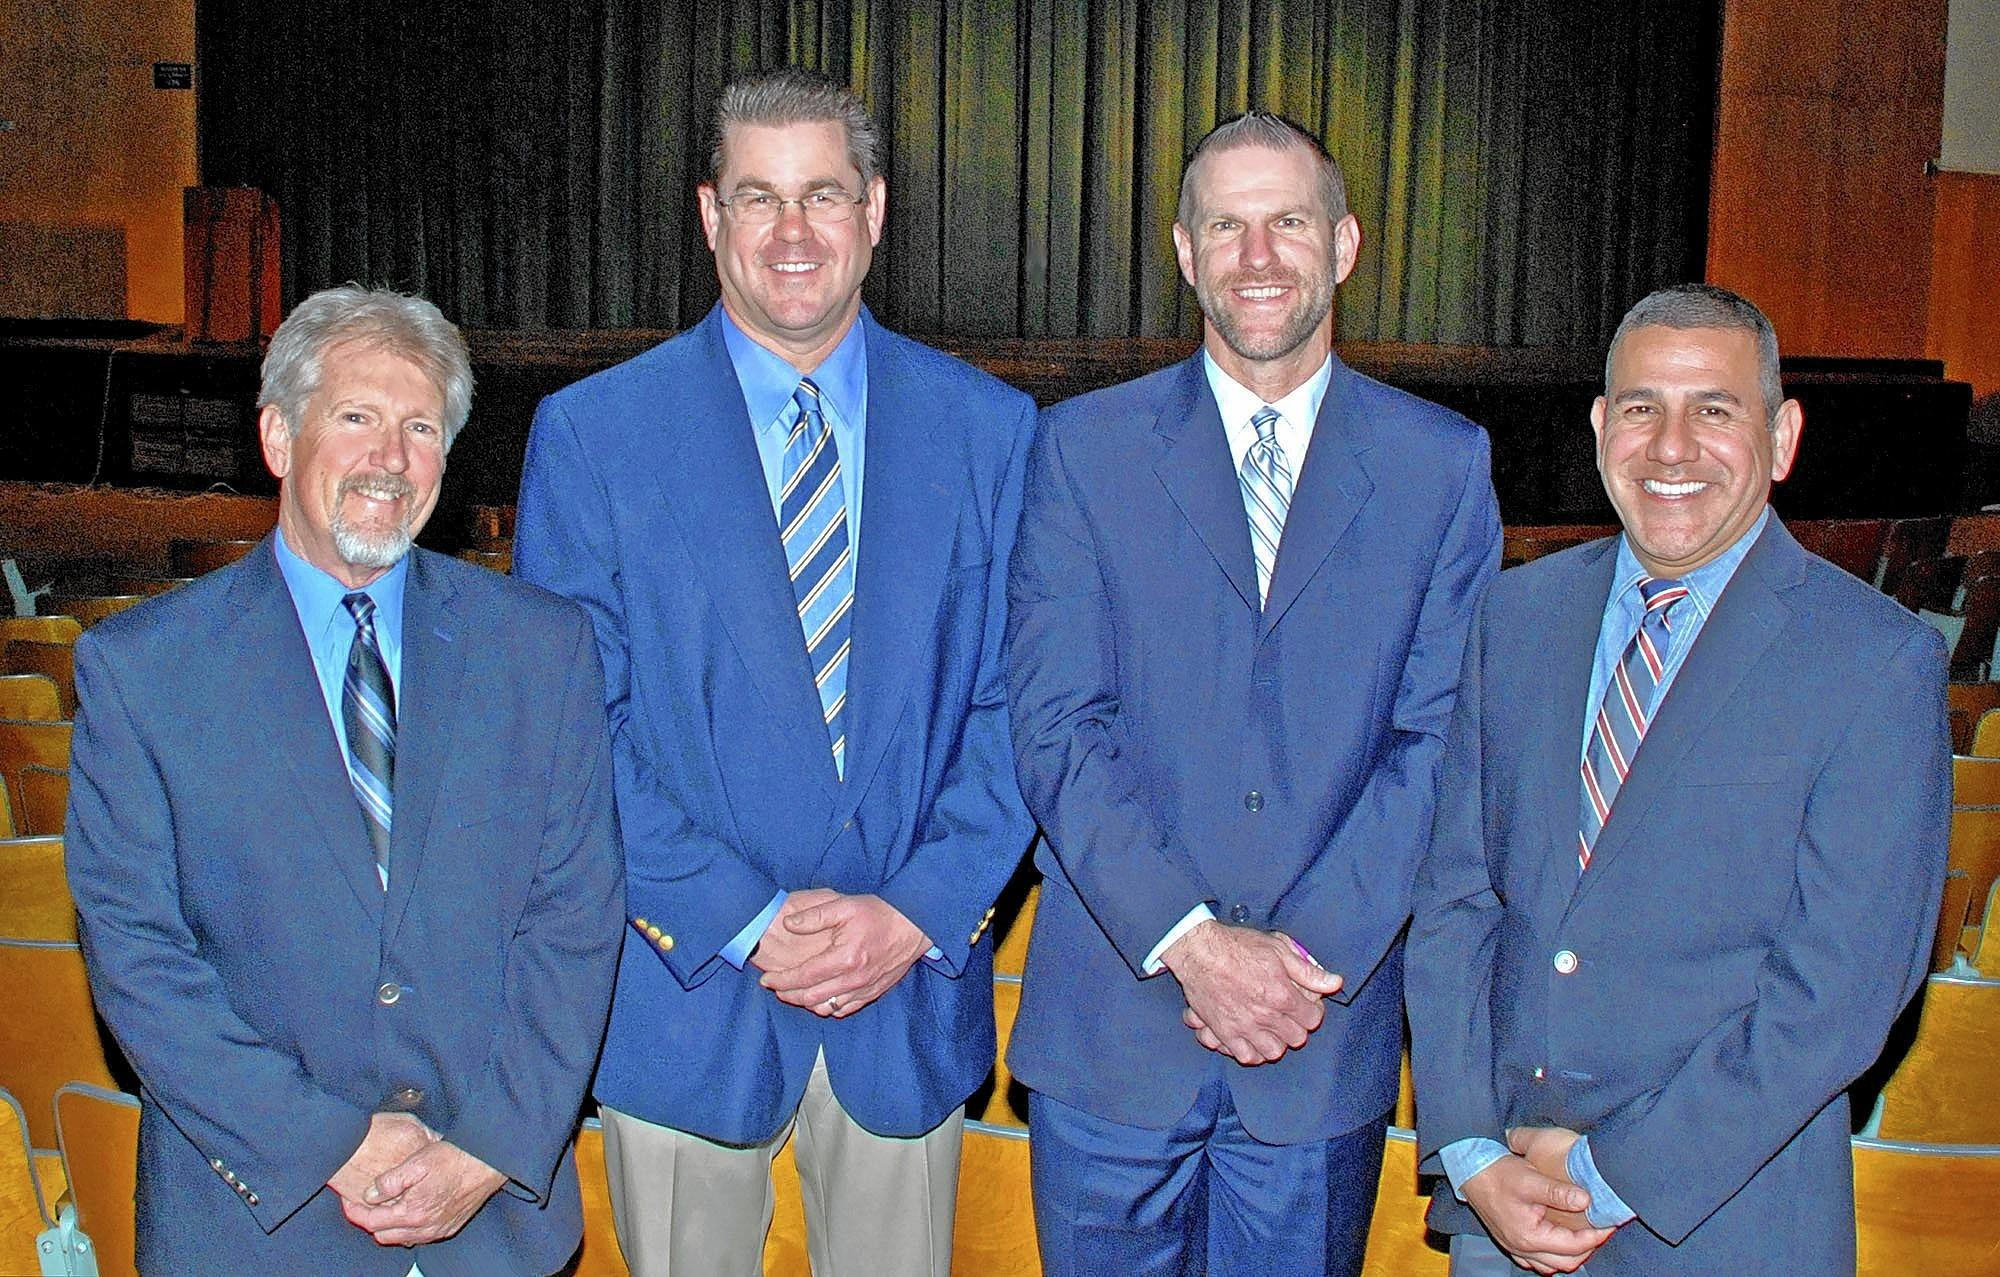 A fundraiser for the modernization of John Muir Middle School auditorium was hosted by principal Greg Miller, second from right, and his predecessors, Bruce Osgood, from left, Dan Hacking and John Paramo.